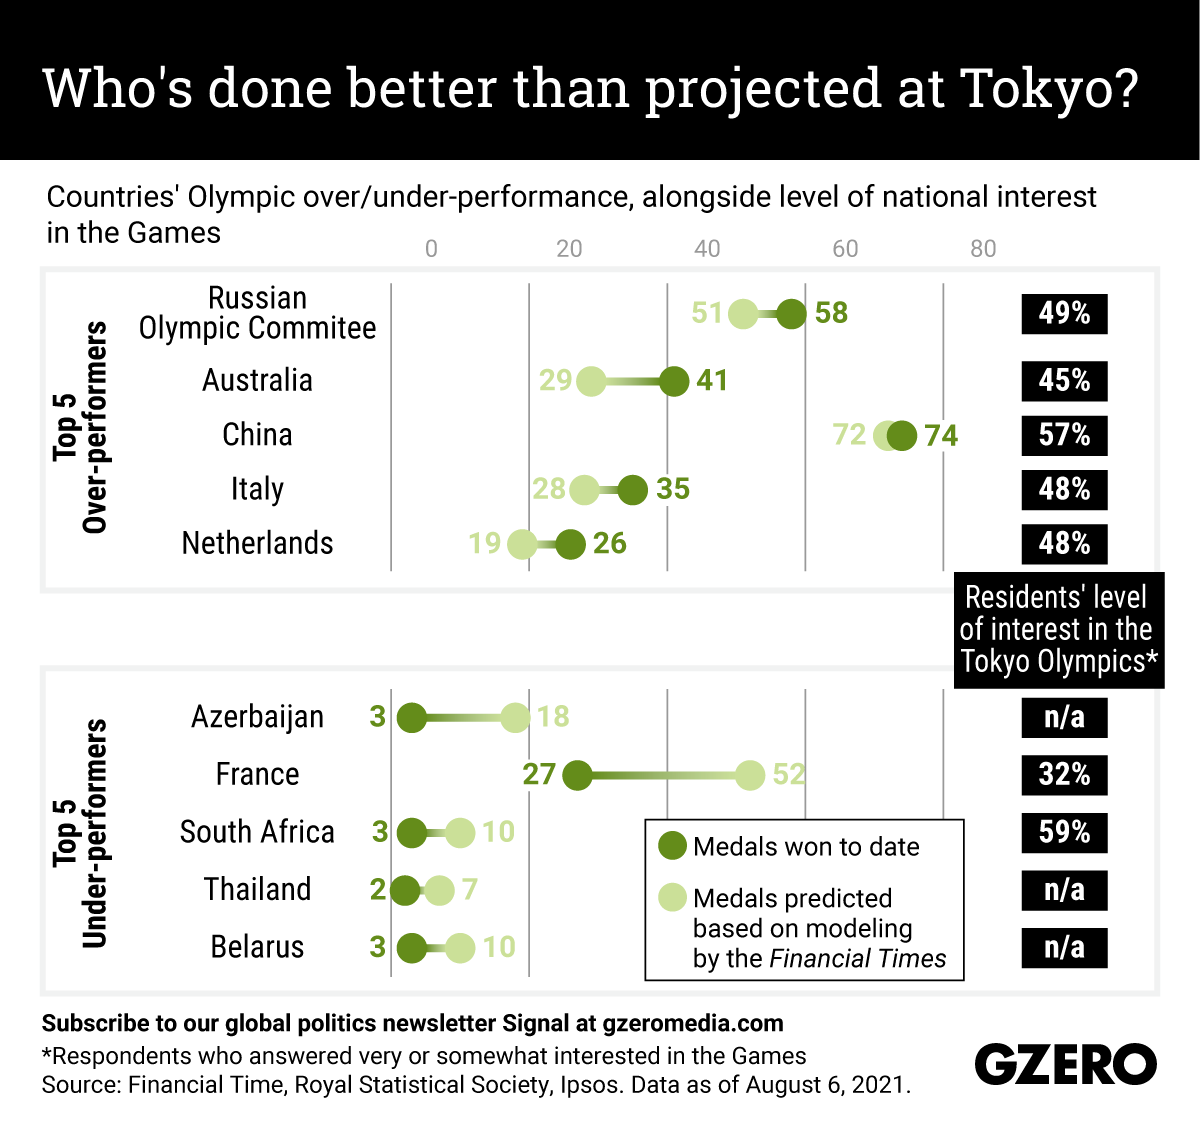 The Graphic Truth: Who's done better than projected at Tokyo?